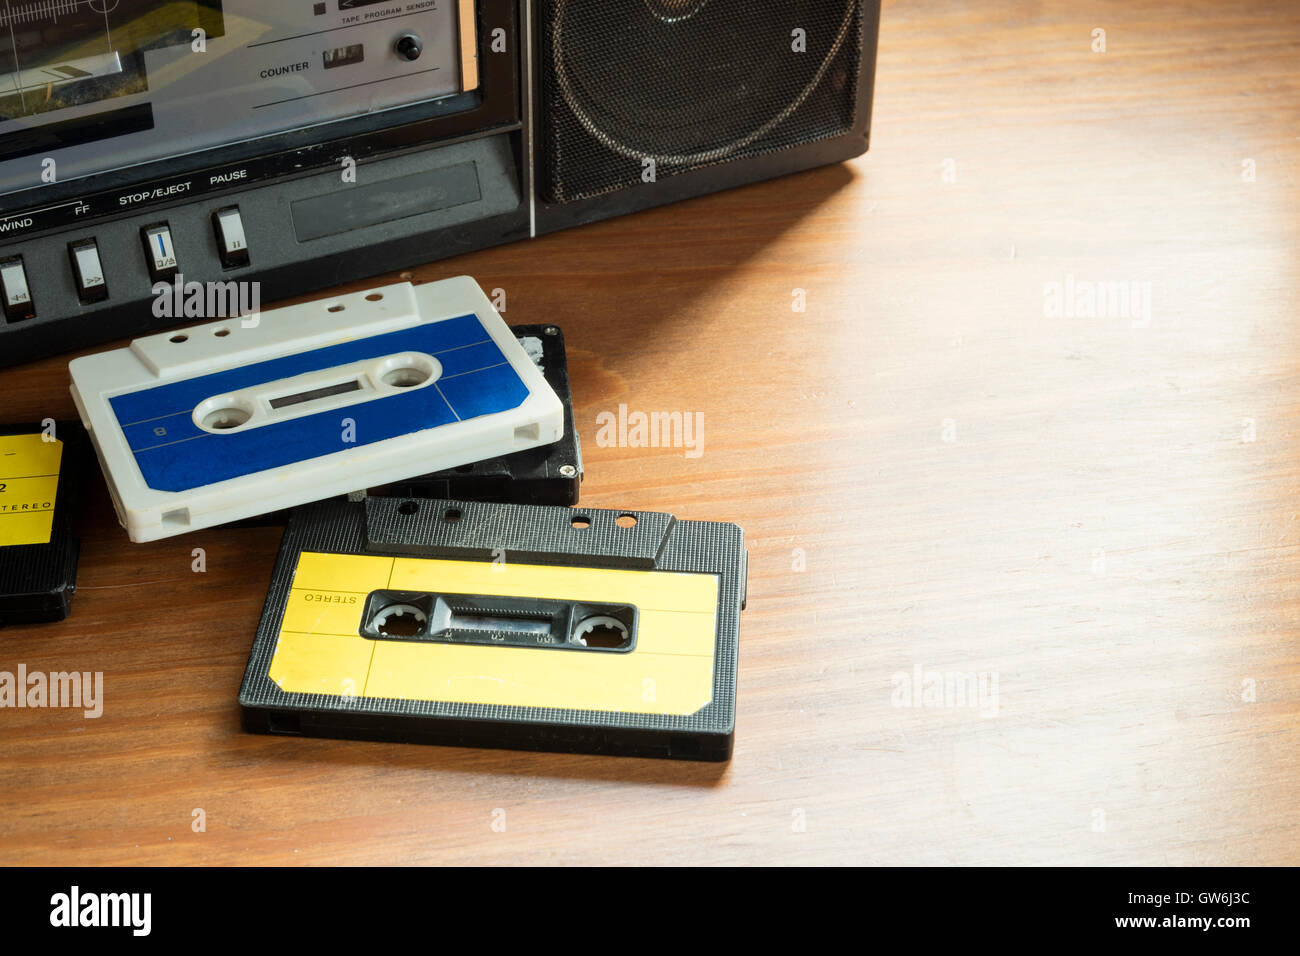 Vintage cassette tapes with radio-cassette player on a wooden table. - Stock Image